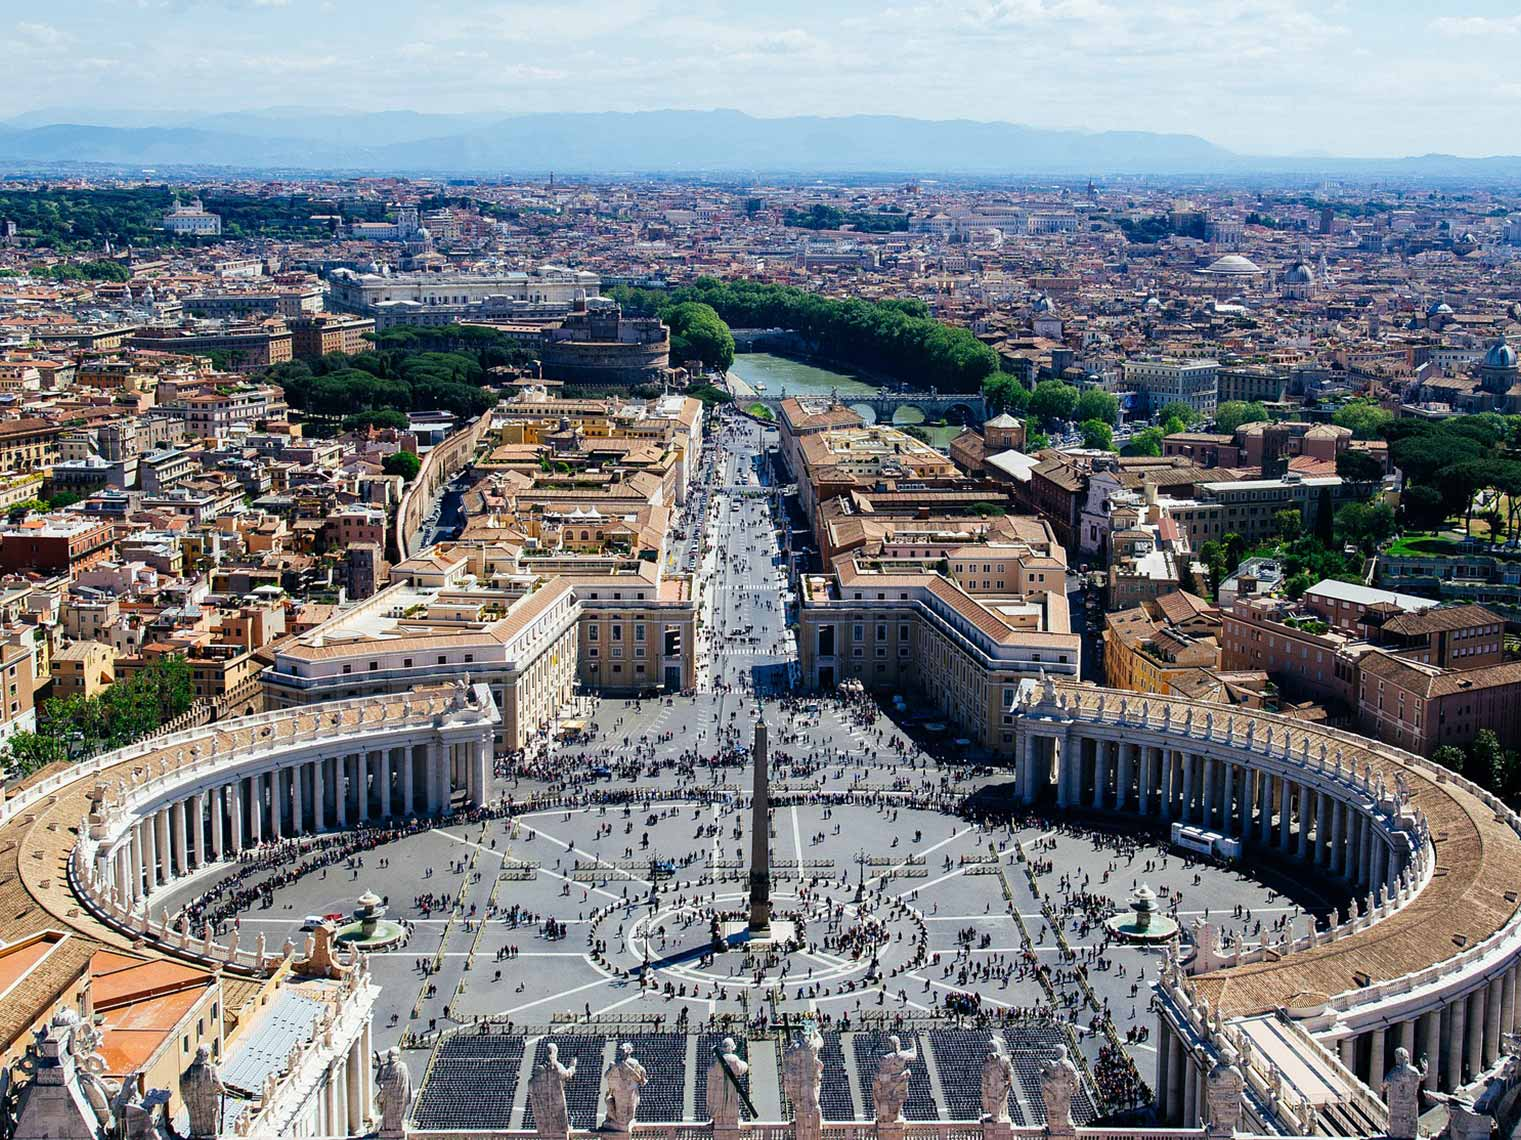 St Peters square on a tour of the Vatican.